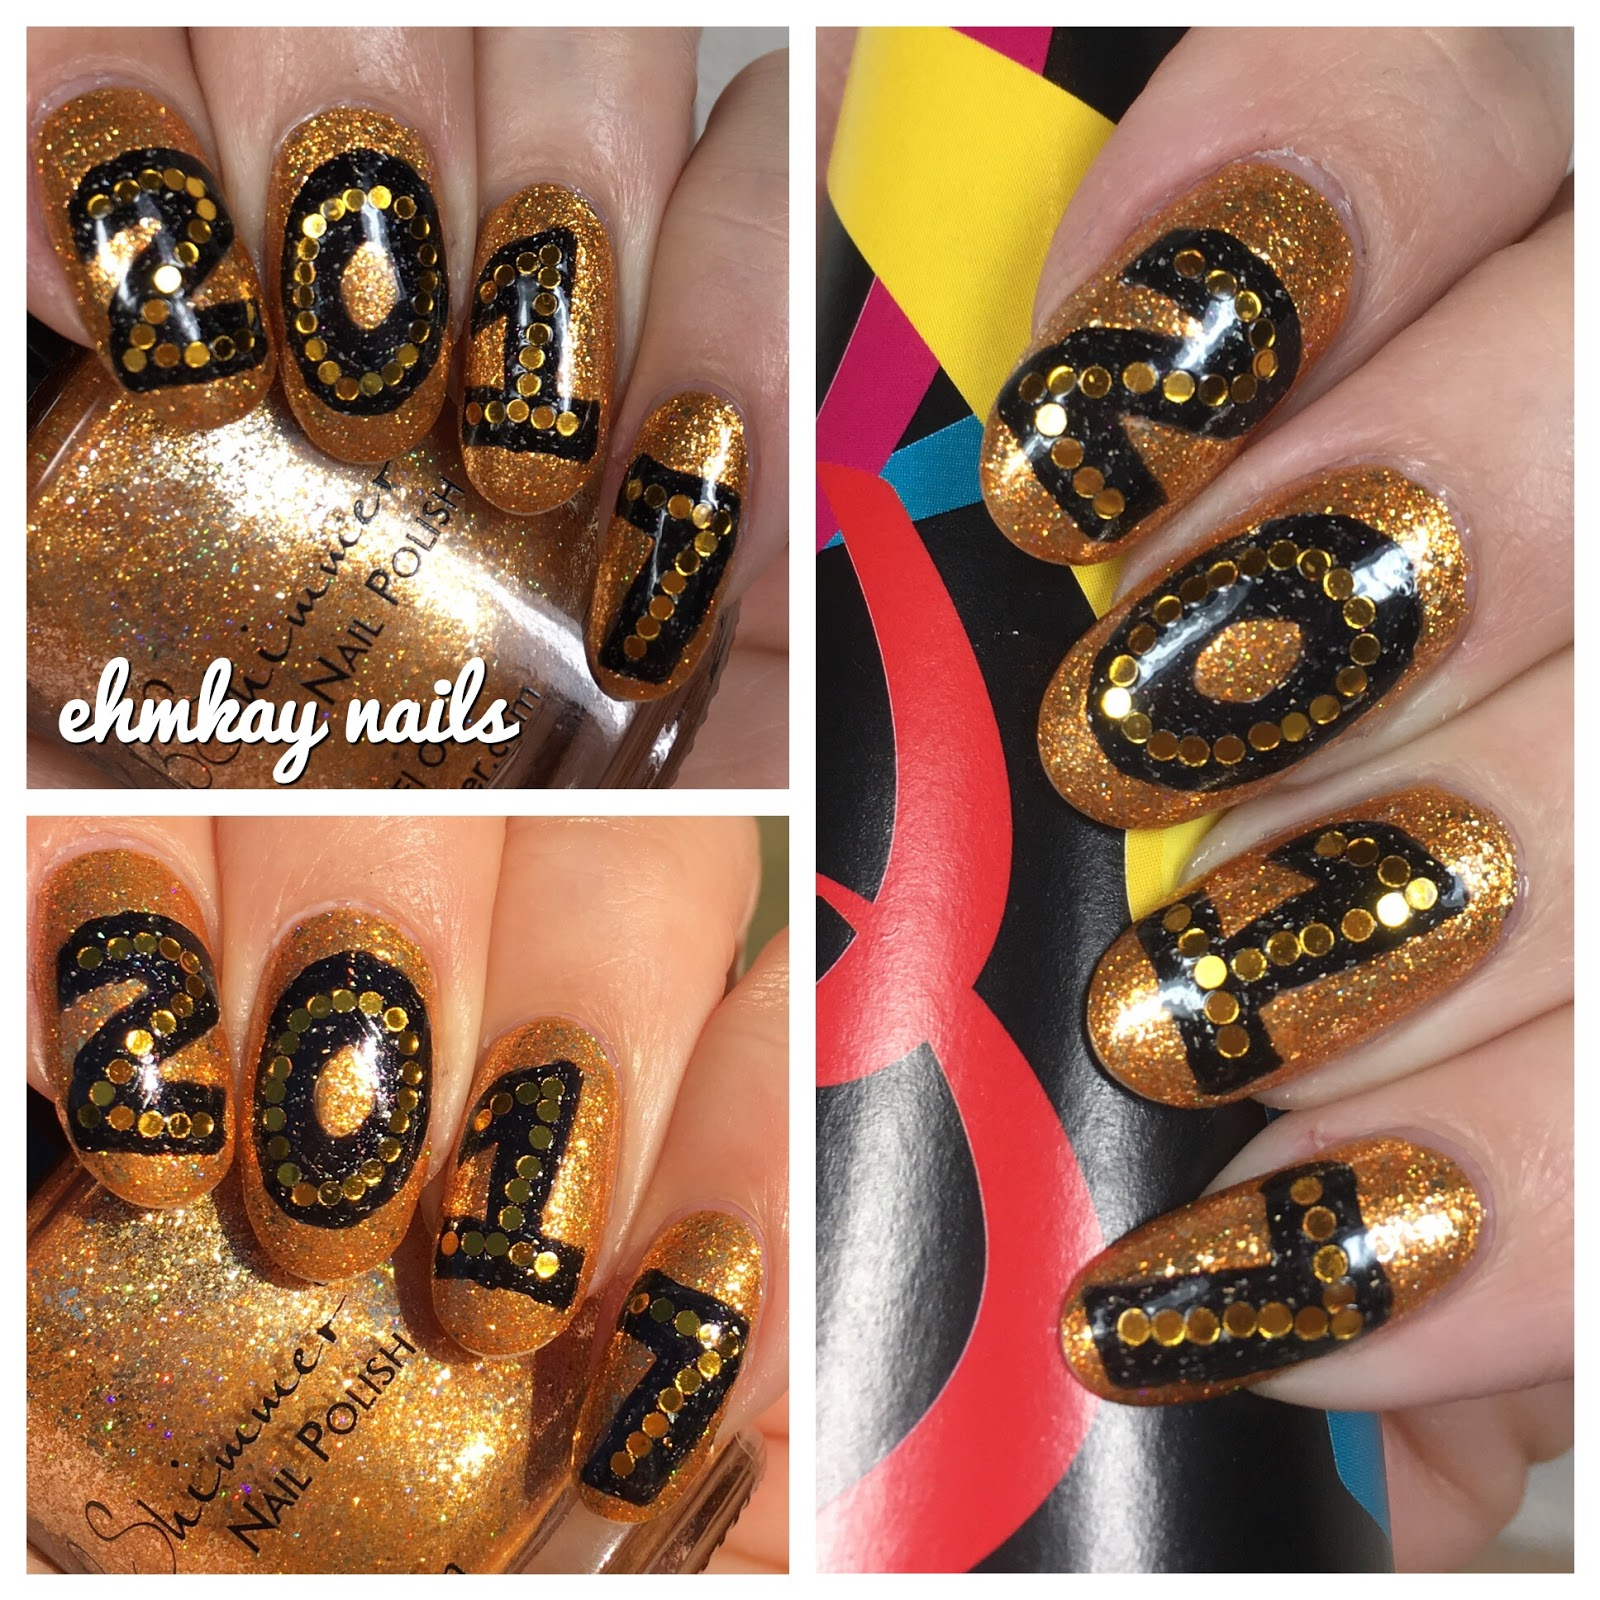 Ehmkay nails welcome to 2017 nail art i reversed the color of my base because the moment i swatched kbshimmer whiskey business i knew it had to be my new years eve manicure prinsesfo Images